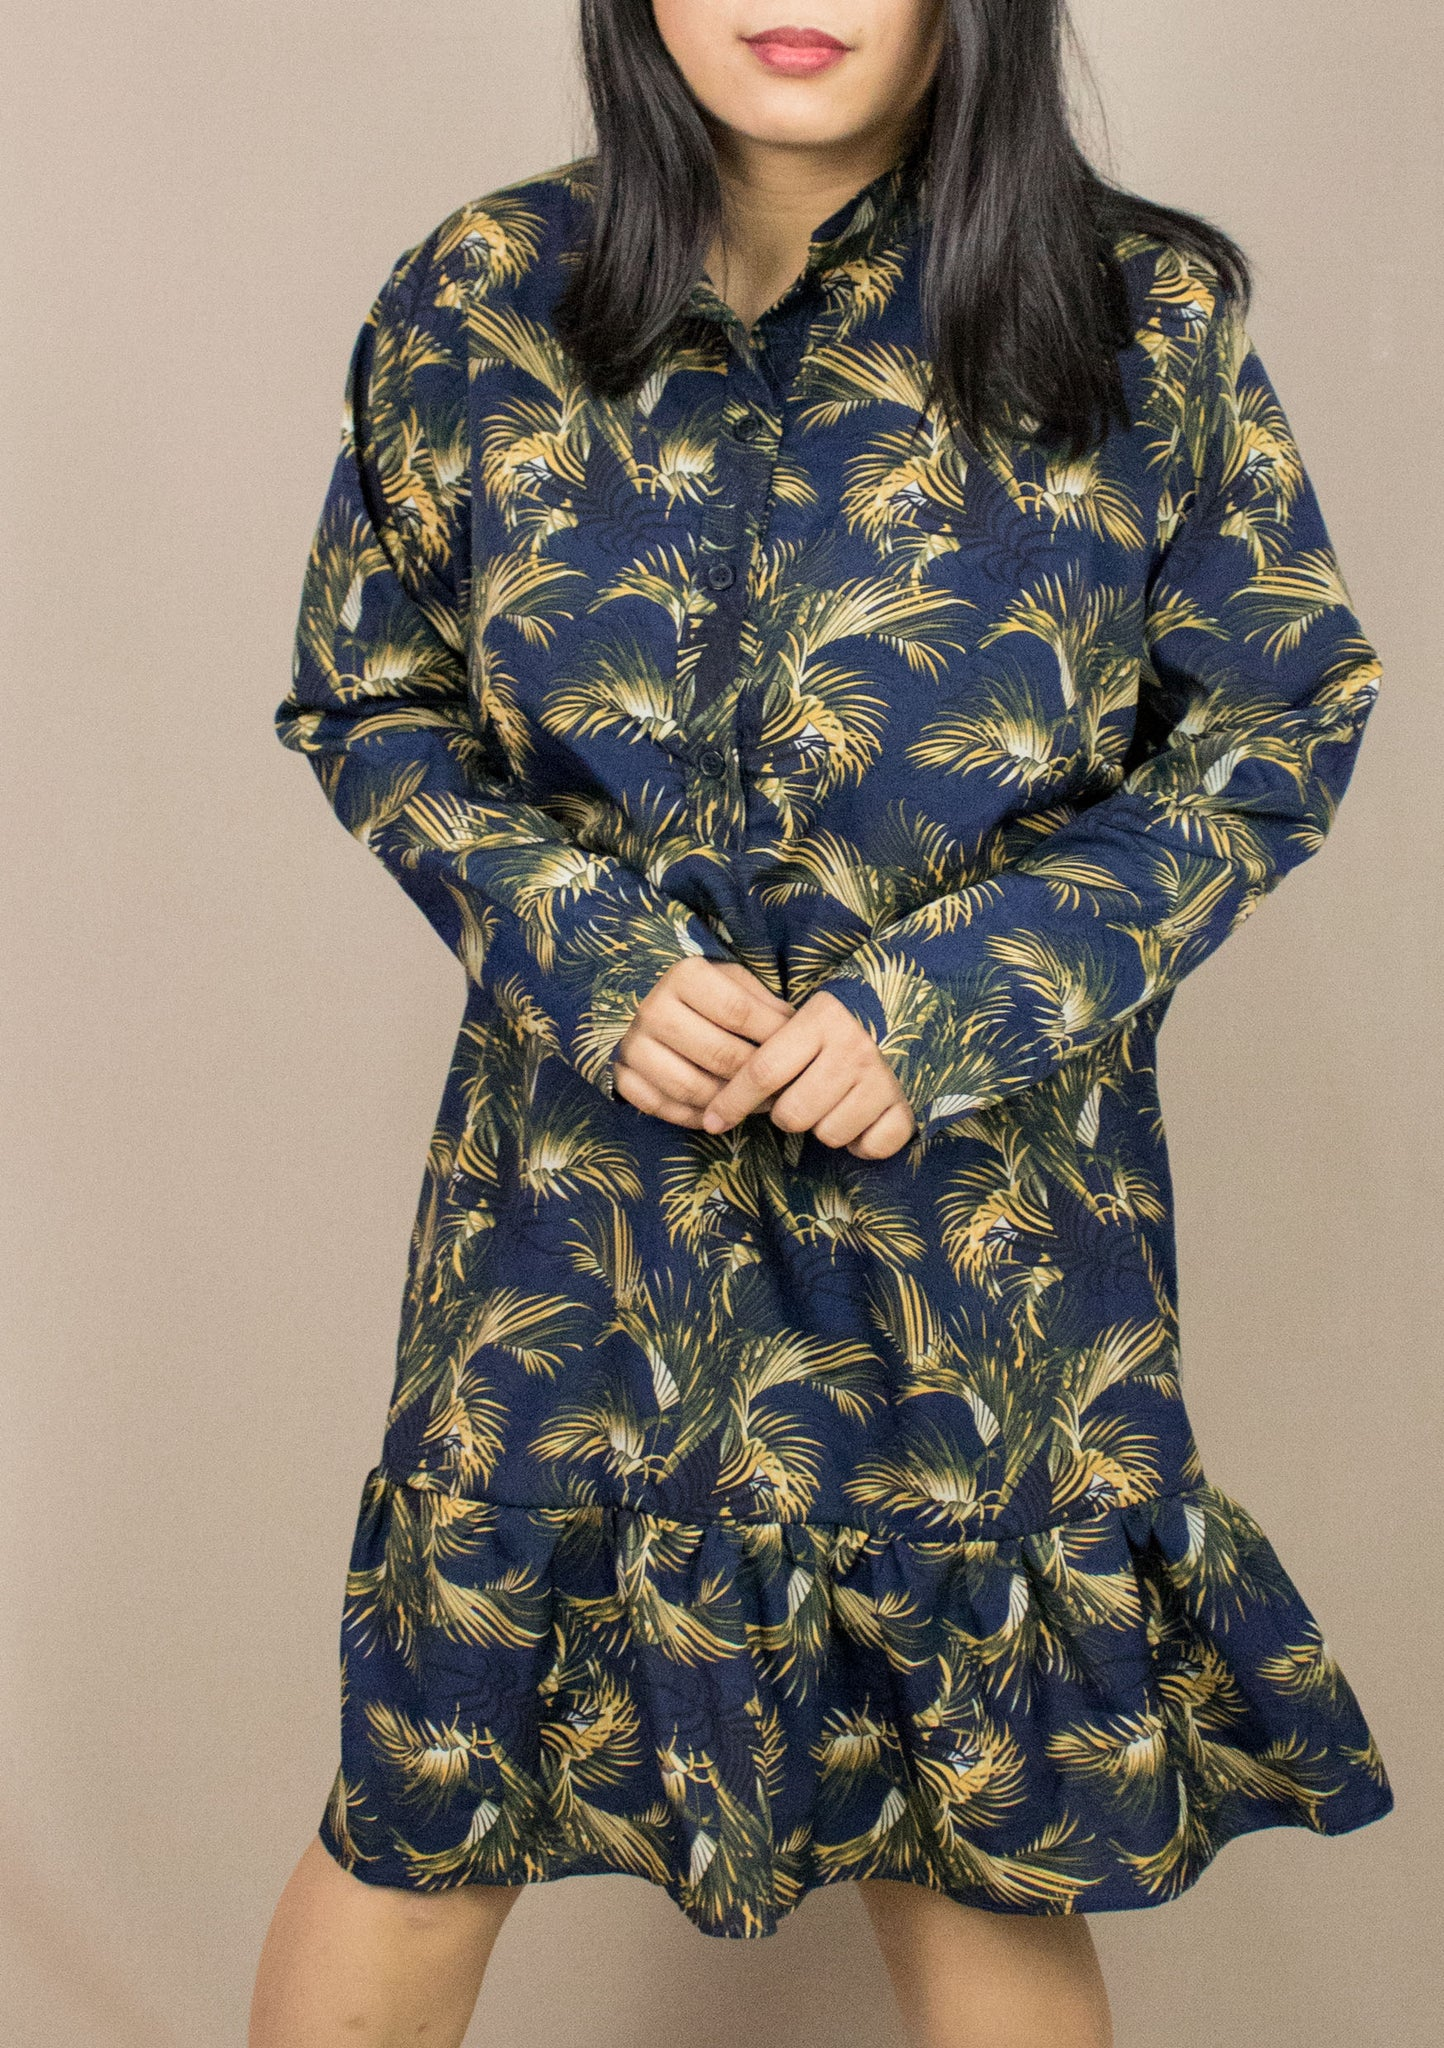 'DIANE' ROYAL PALM LONG SLEEVE DRESS